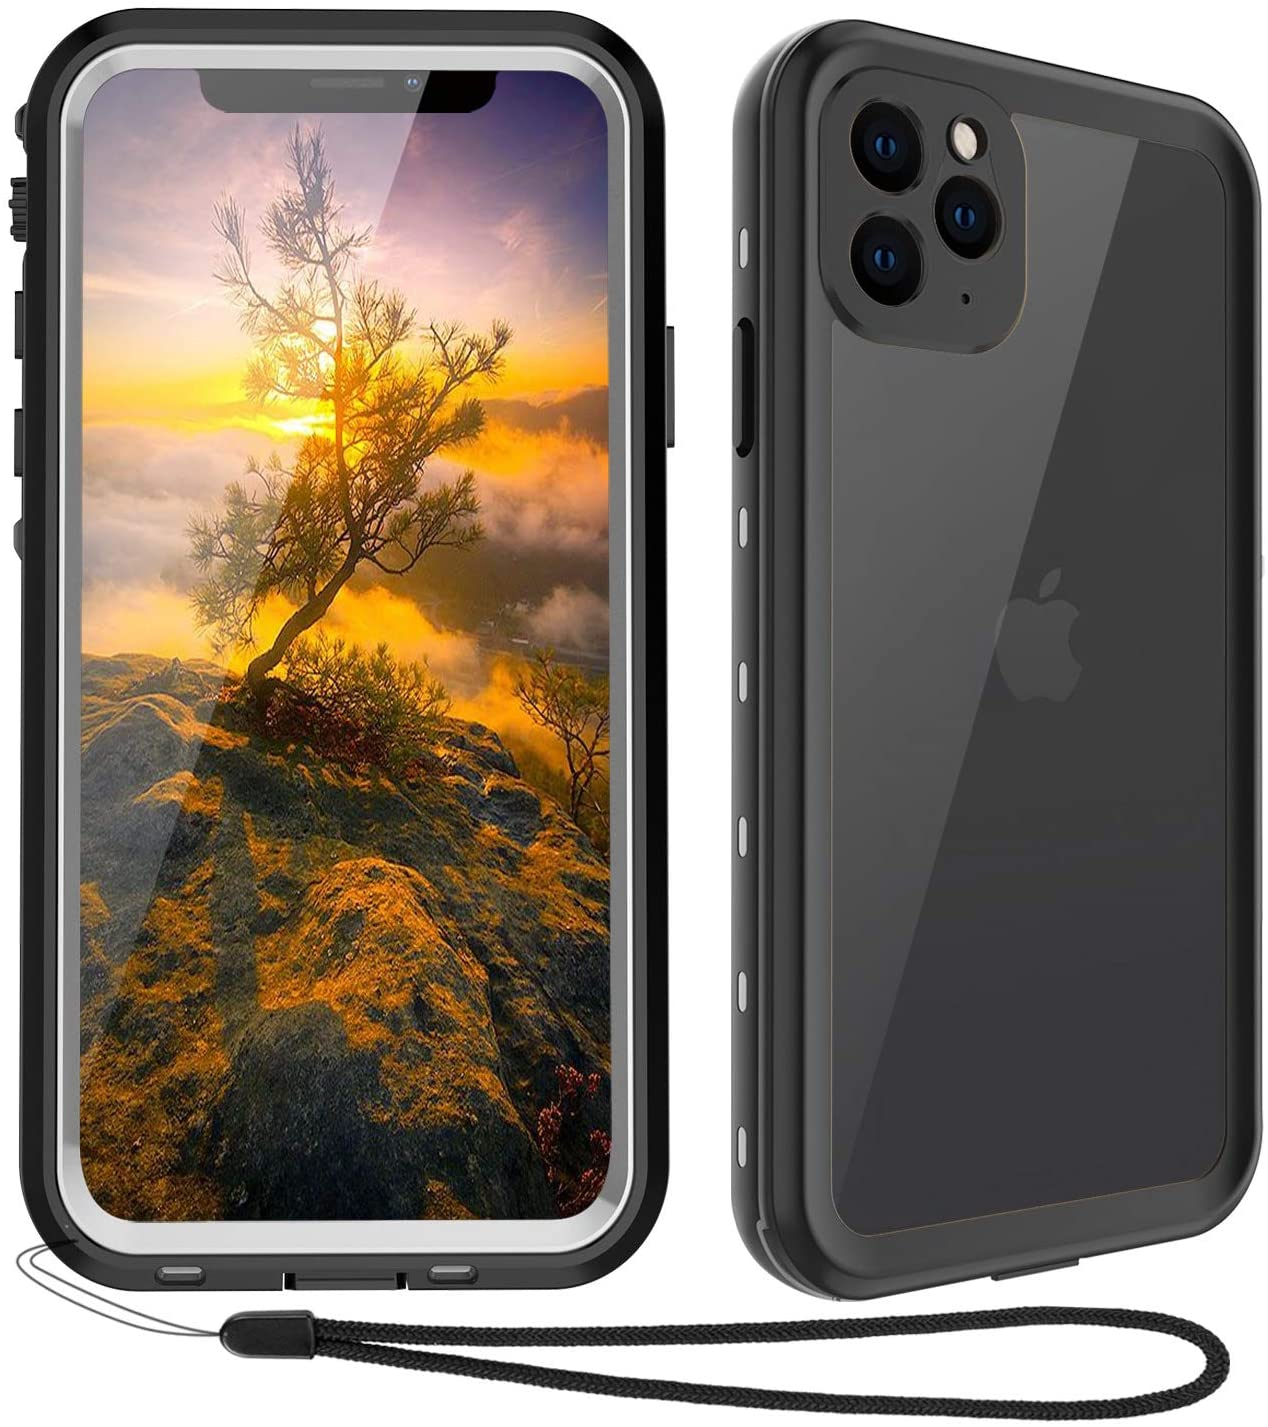 Waterproof iPhone 11 Pro Max Case - iPhone 11 Pro Max Full Body Bumper Case Waterproof Apple iPhone Rugged Protection Case with Built-in Screen ...